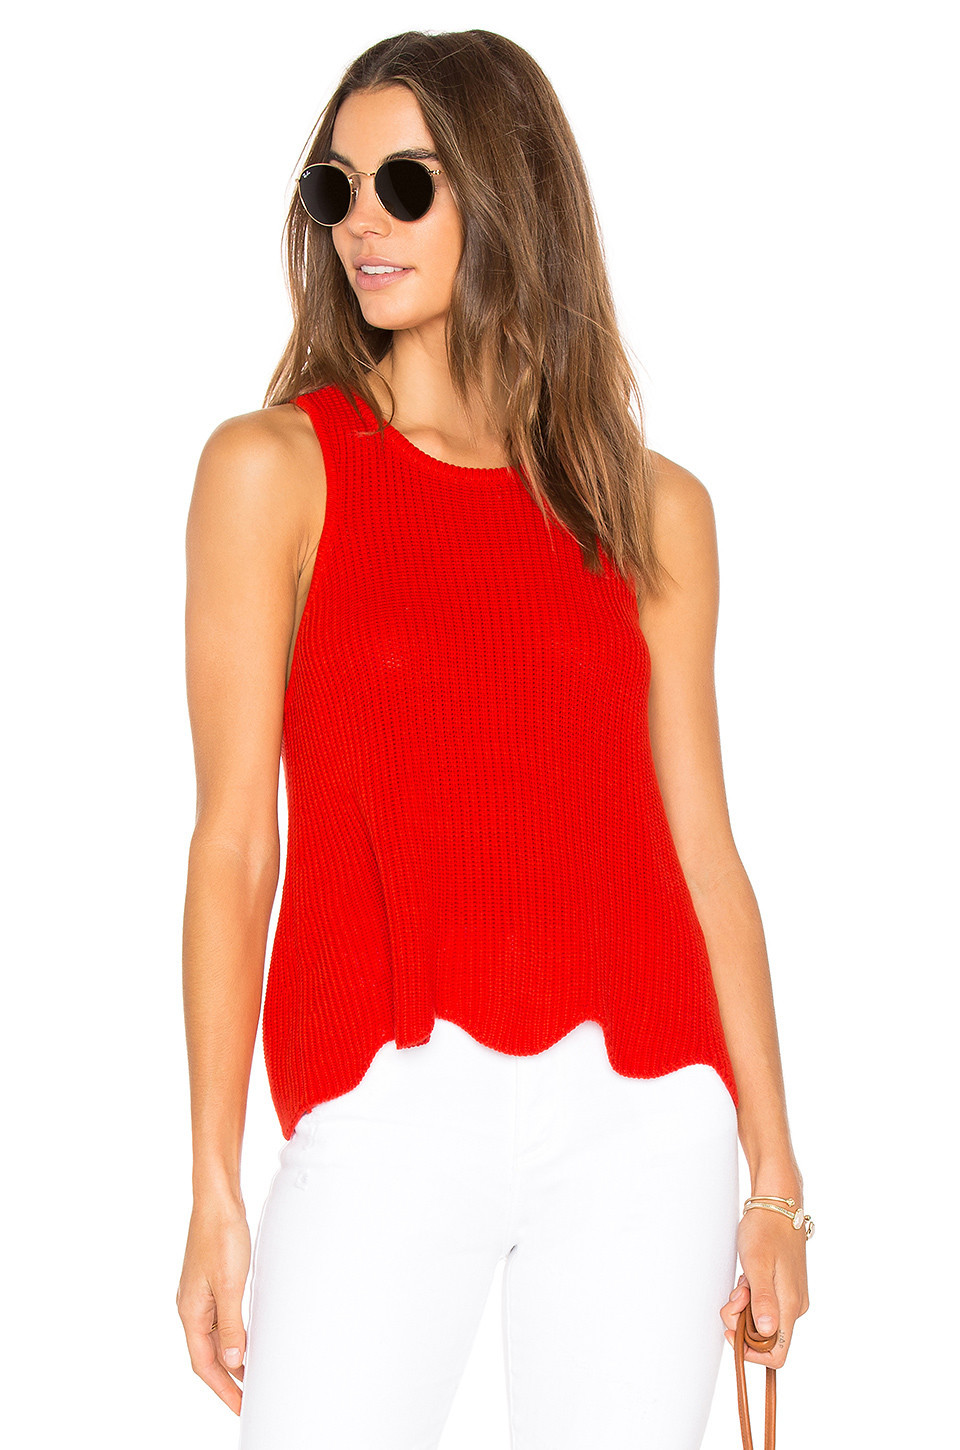 Autumn Cashmere Scallop Shaker Tank in red